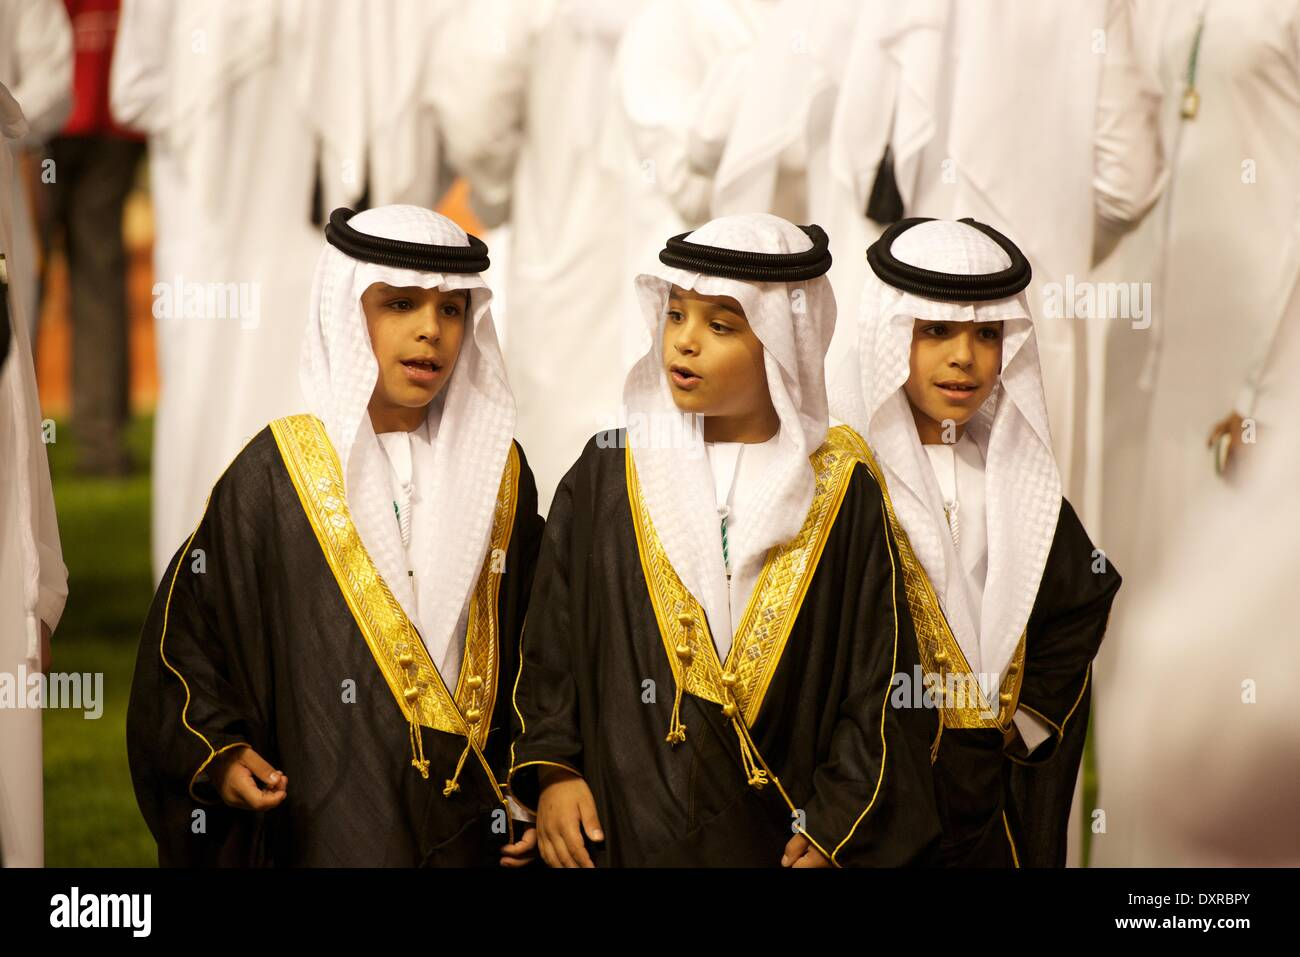 Meydan Racecourse, Dubai, UAE. 29th March, 2014. Three young princes greet the riders as they enter the parade ring - Stock Image